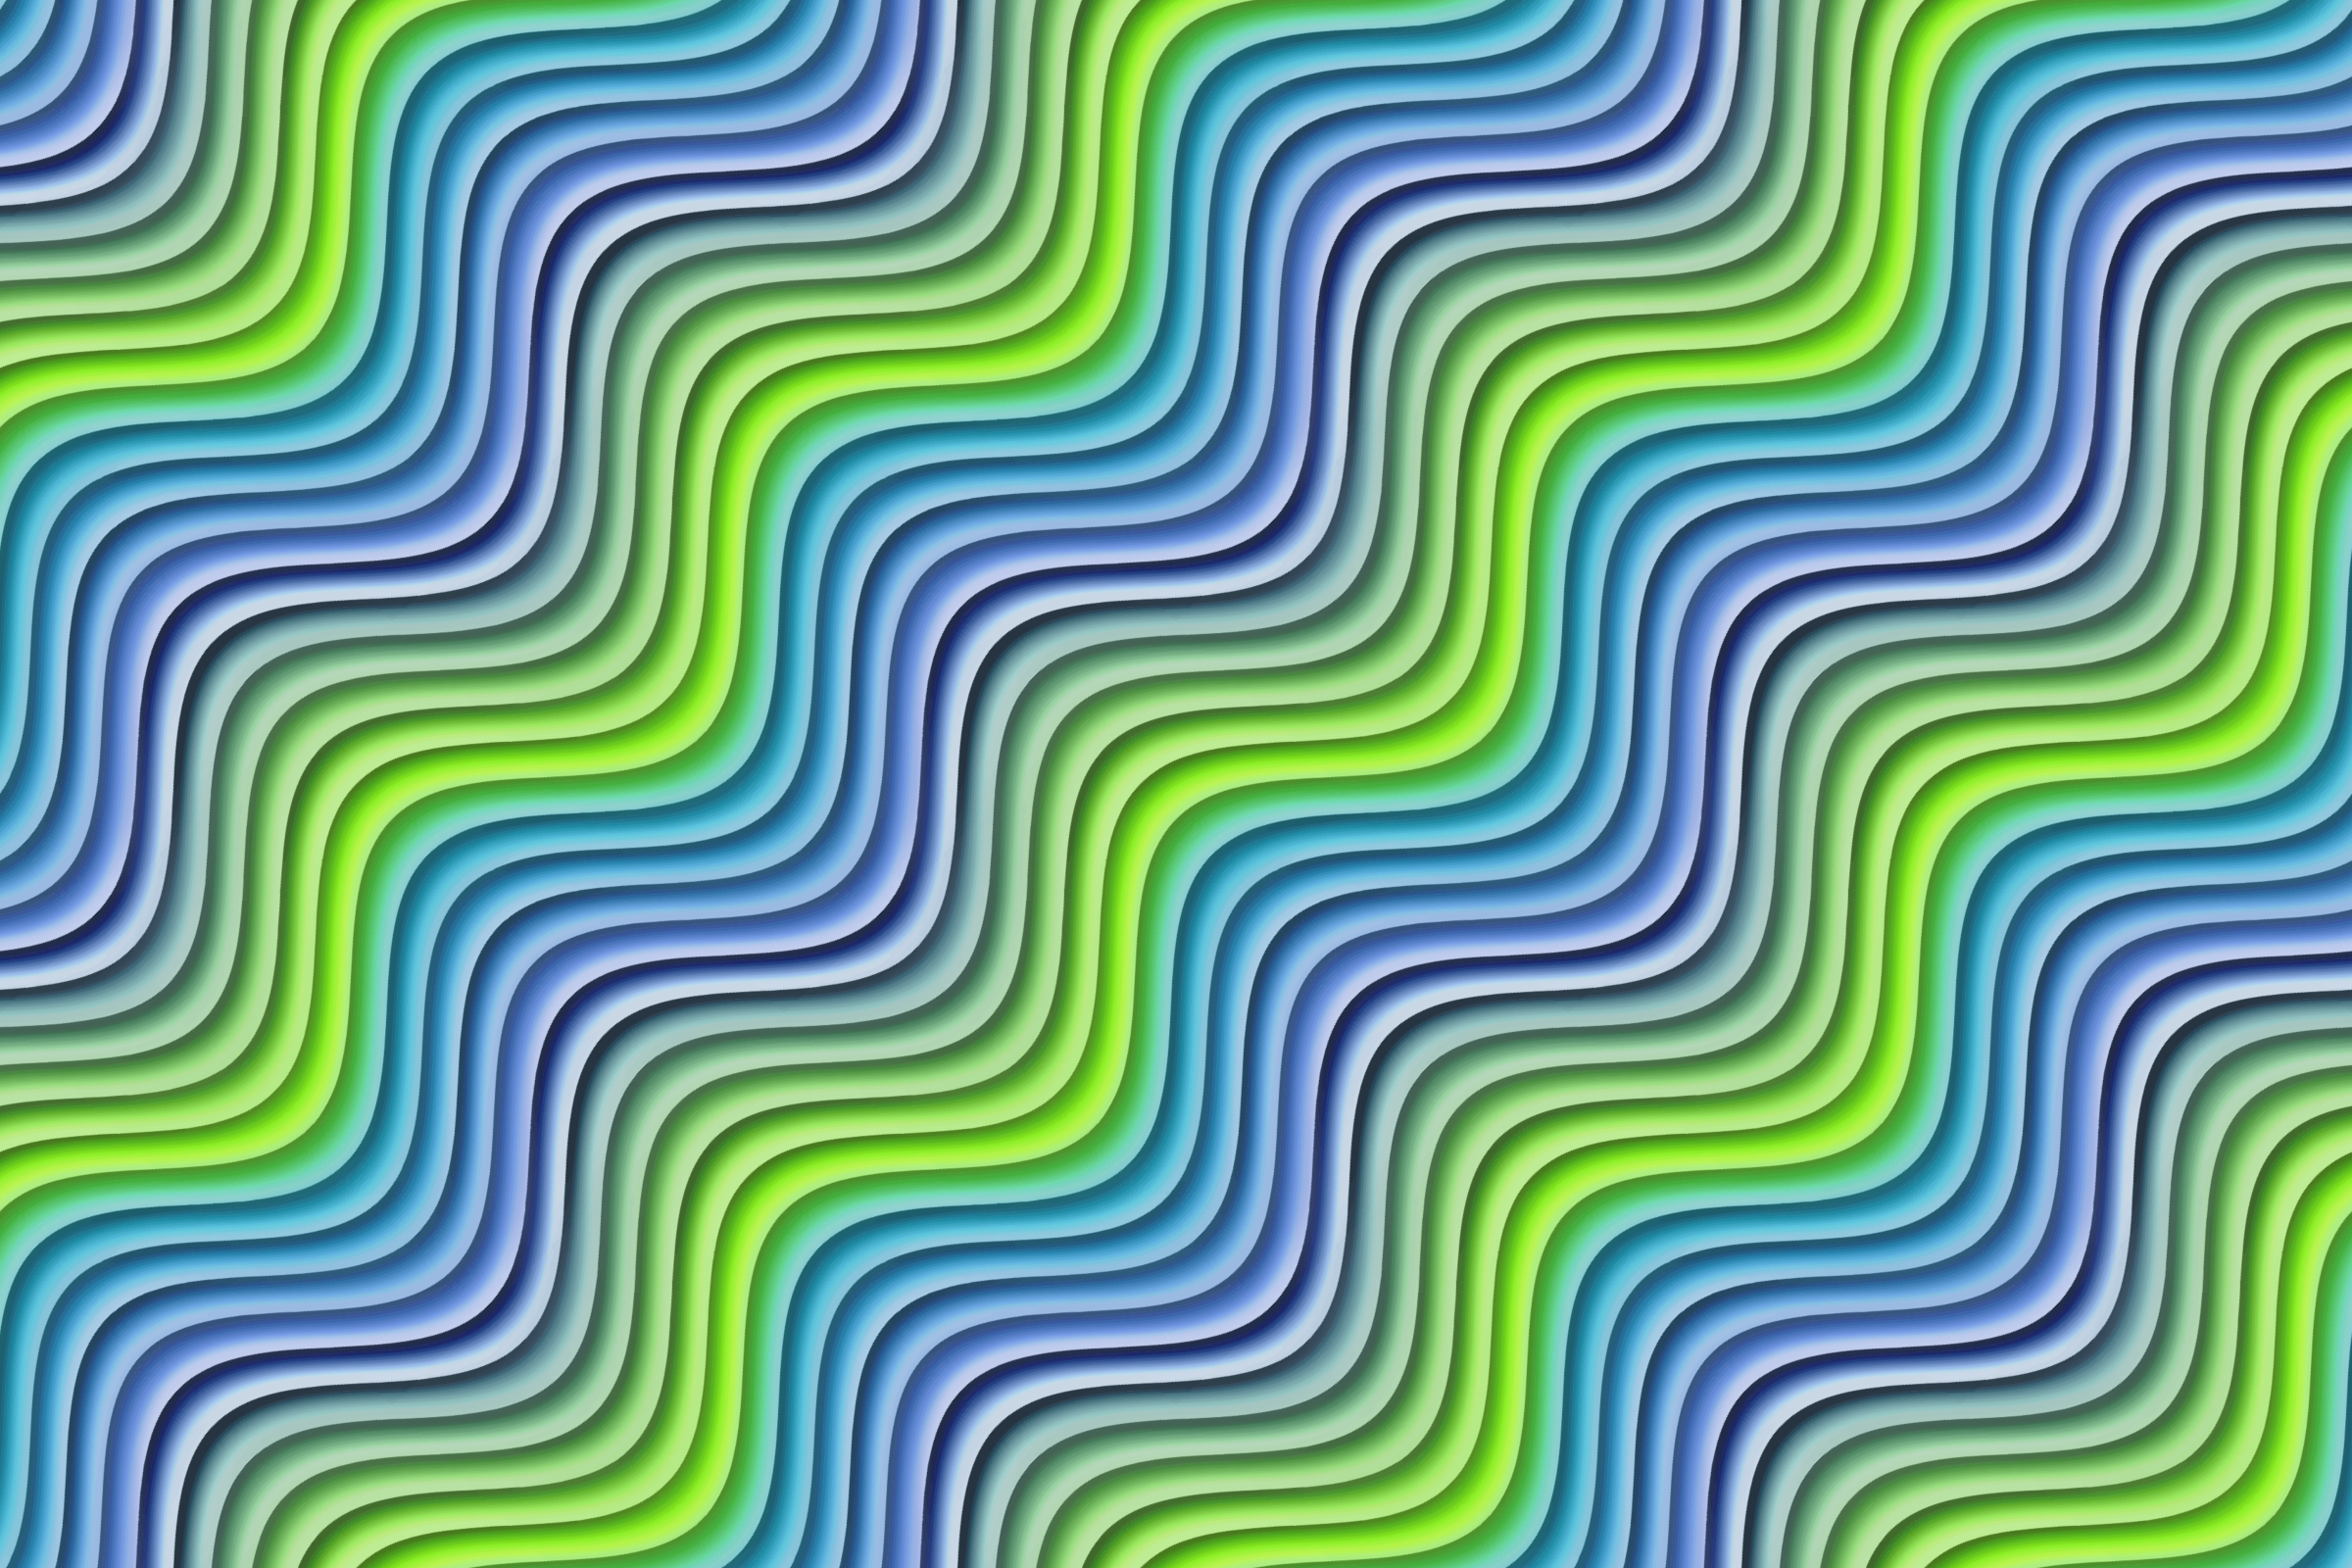 Wavy background 8 (colour 2) by Firkin